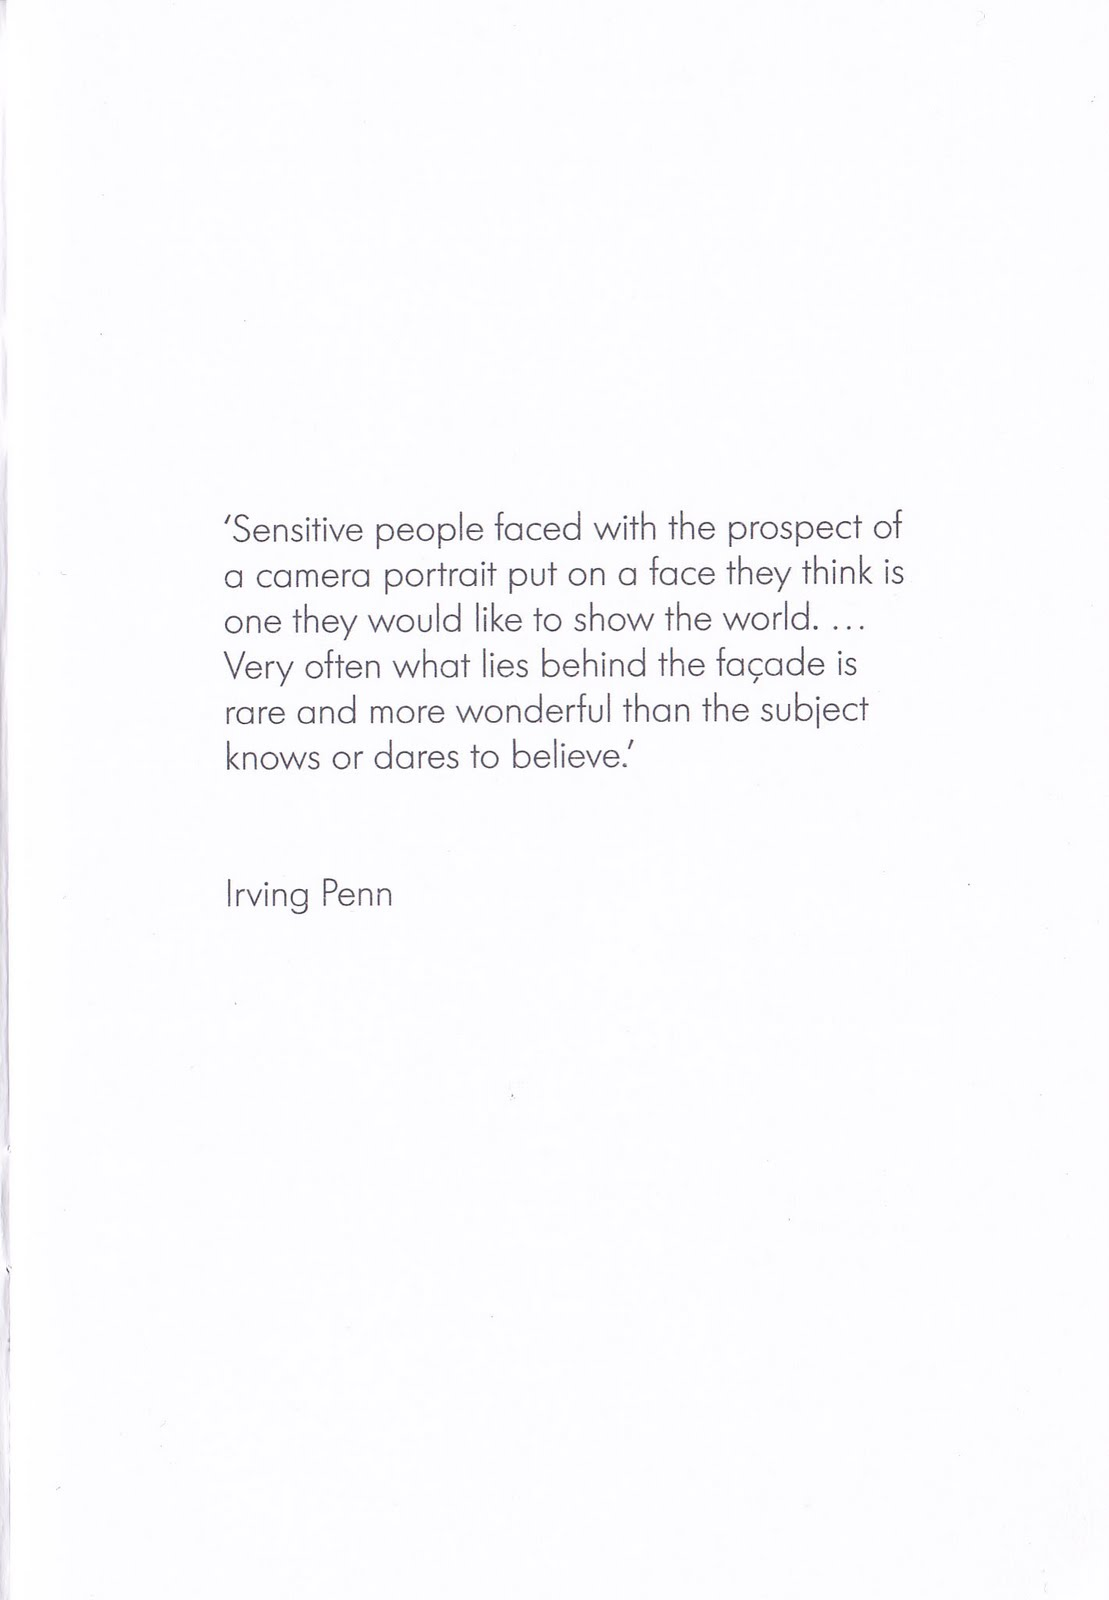 Irving Penn's quote #3